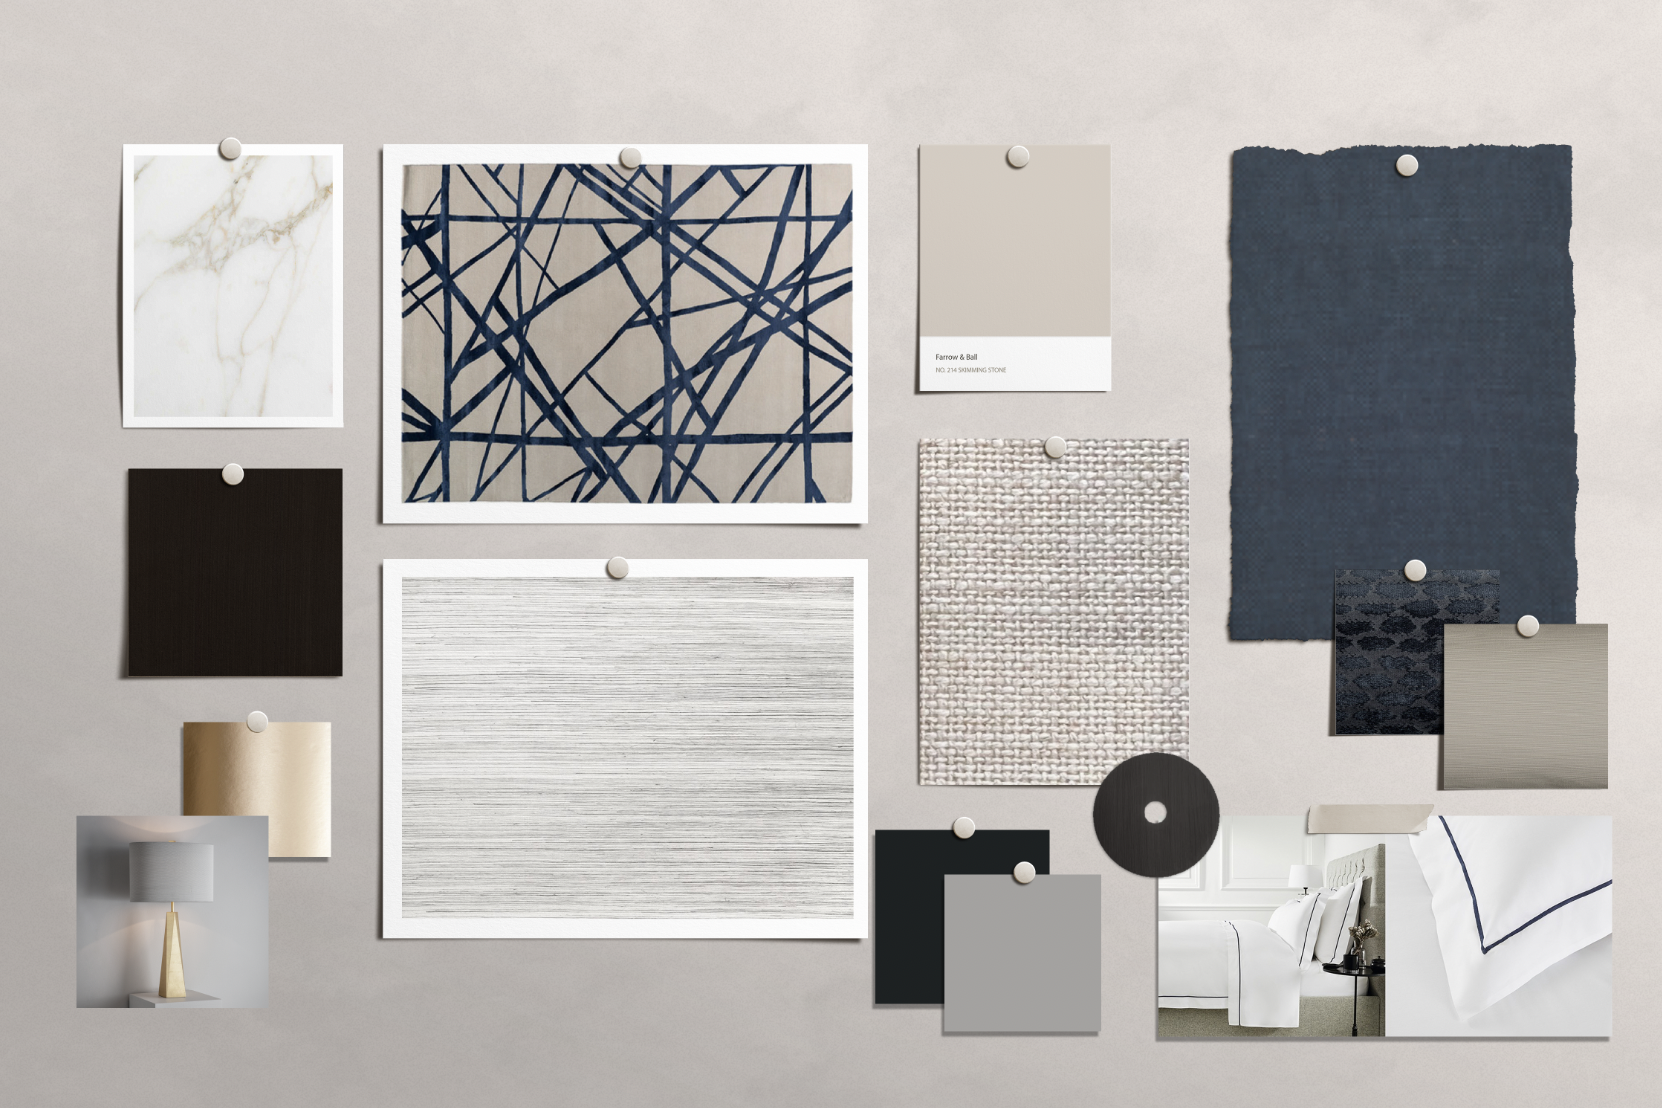 Mood board example as part of NW3 Interior design services.